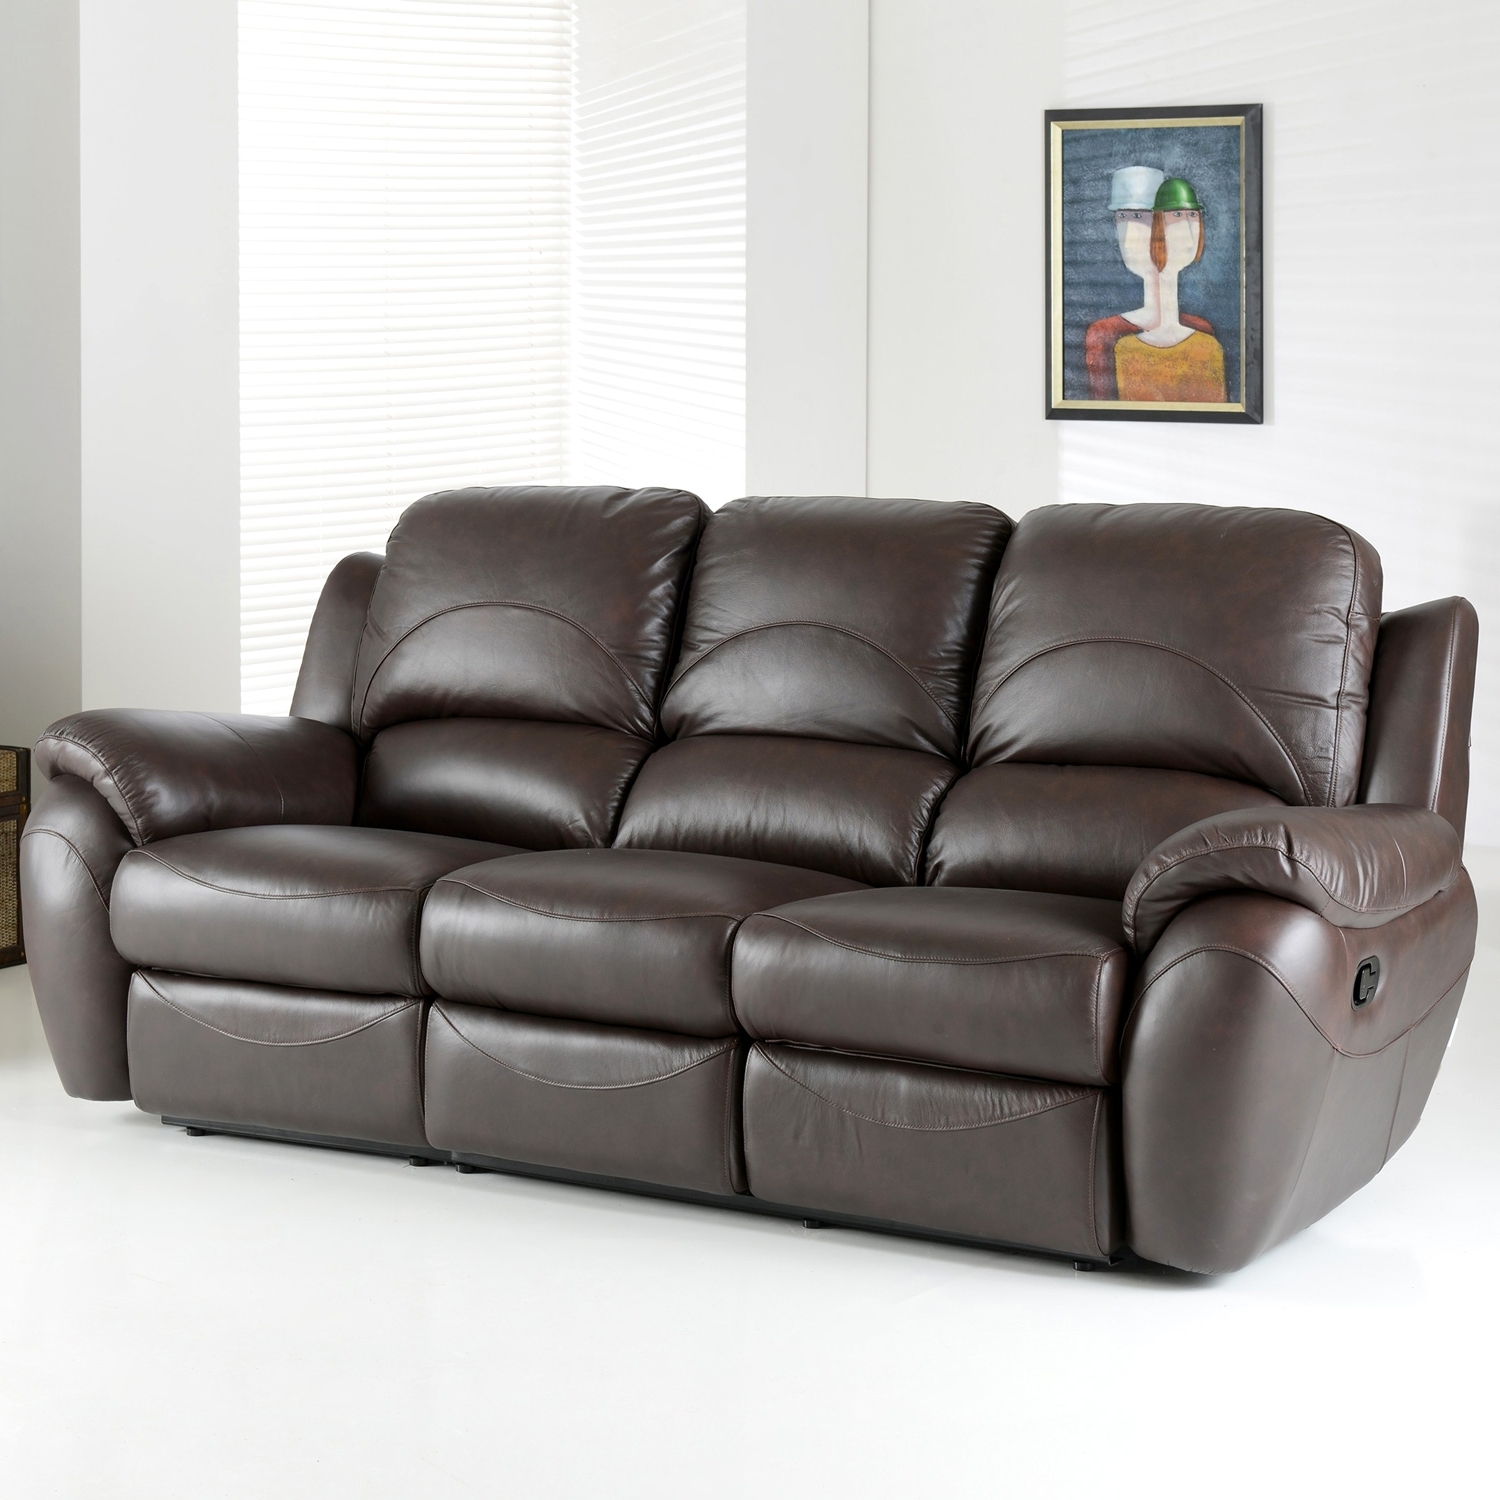 3 Seater Leather Sofas with regard to Well known 3 Seater Leather Recliner Sofa Image